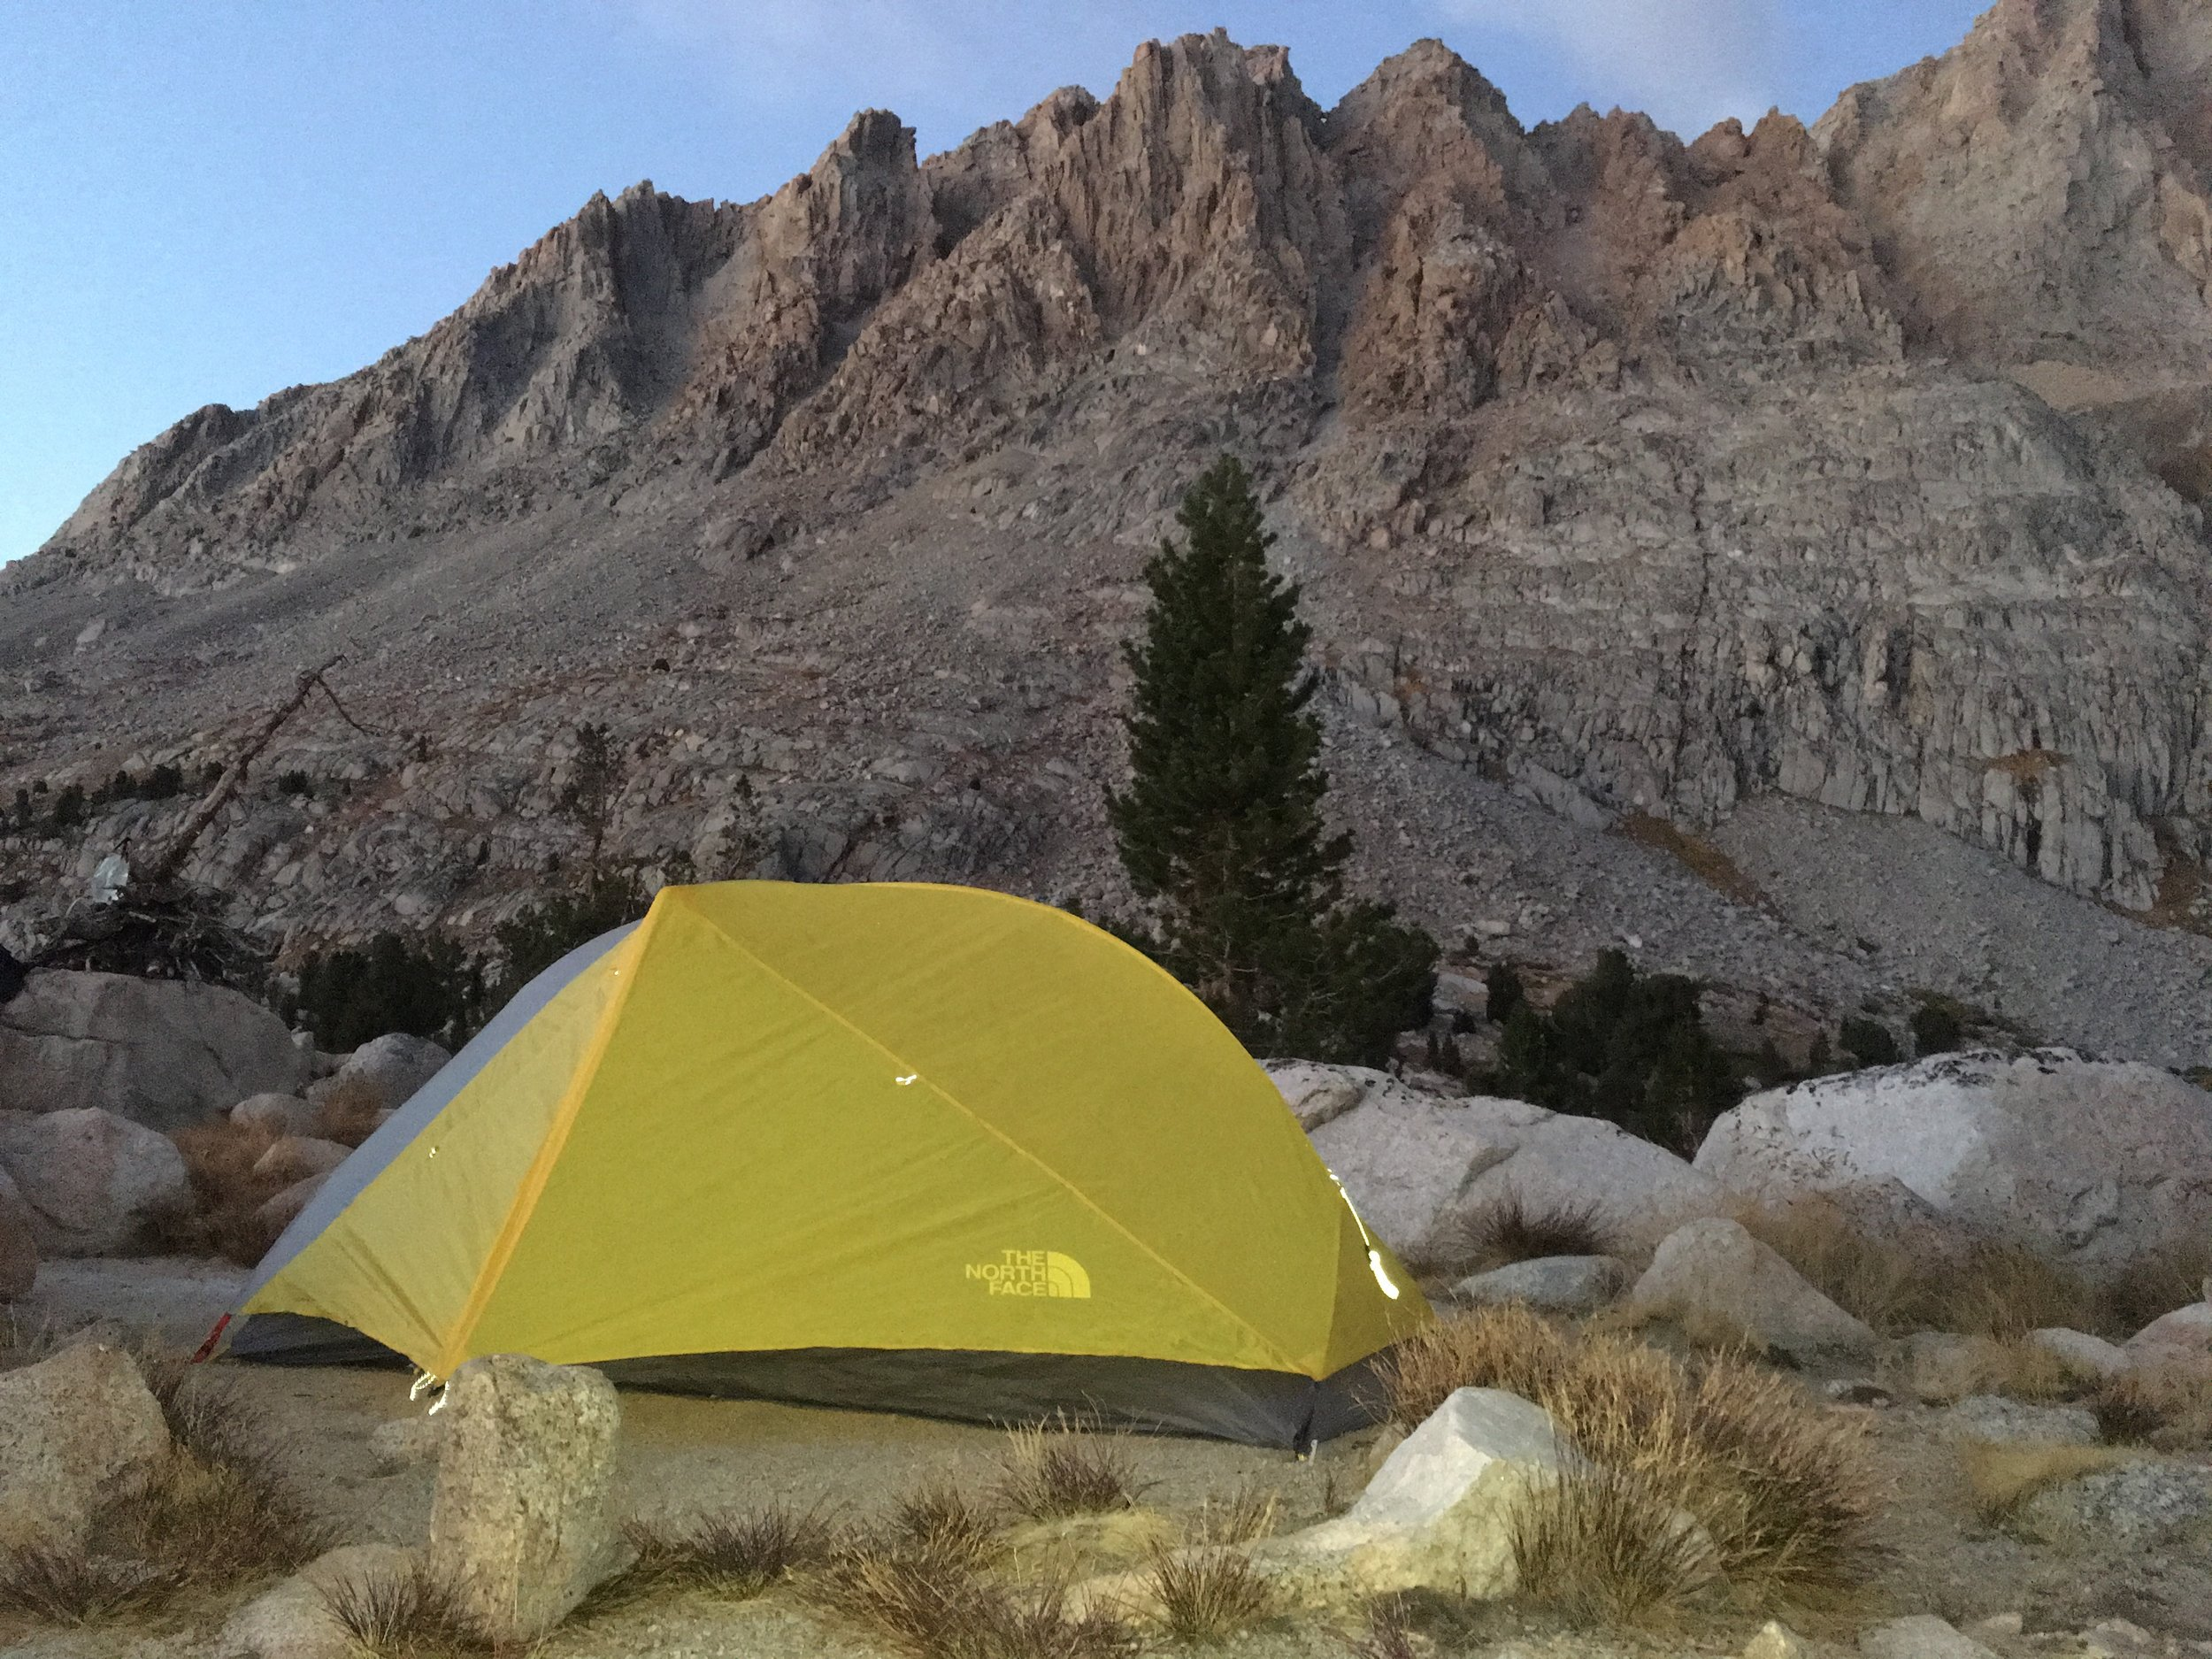 The new version of our trustworthy home for nearly the past 3 months. TNF Mica 2.